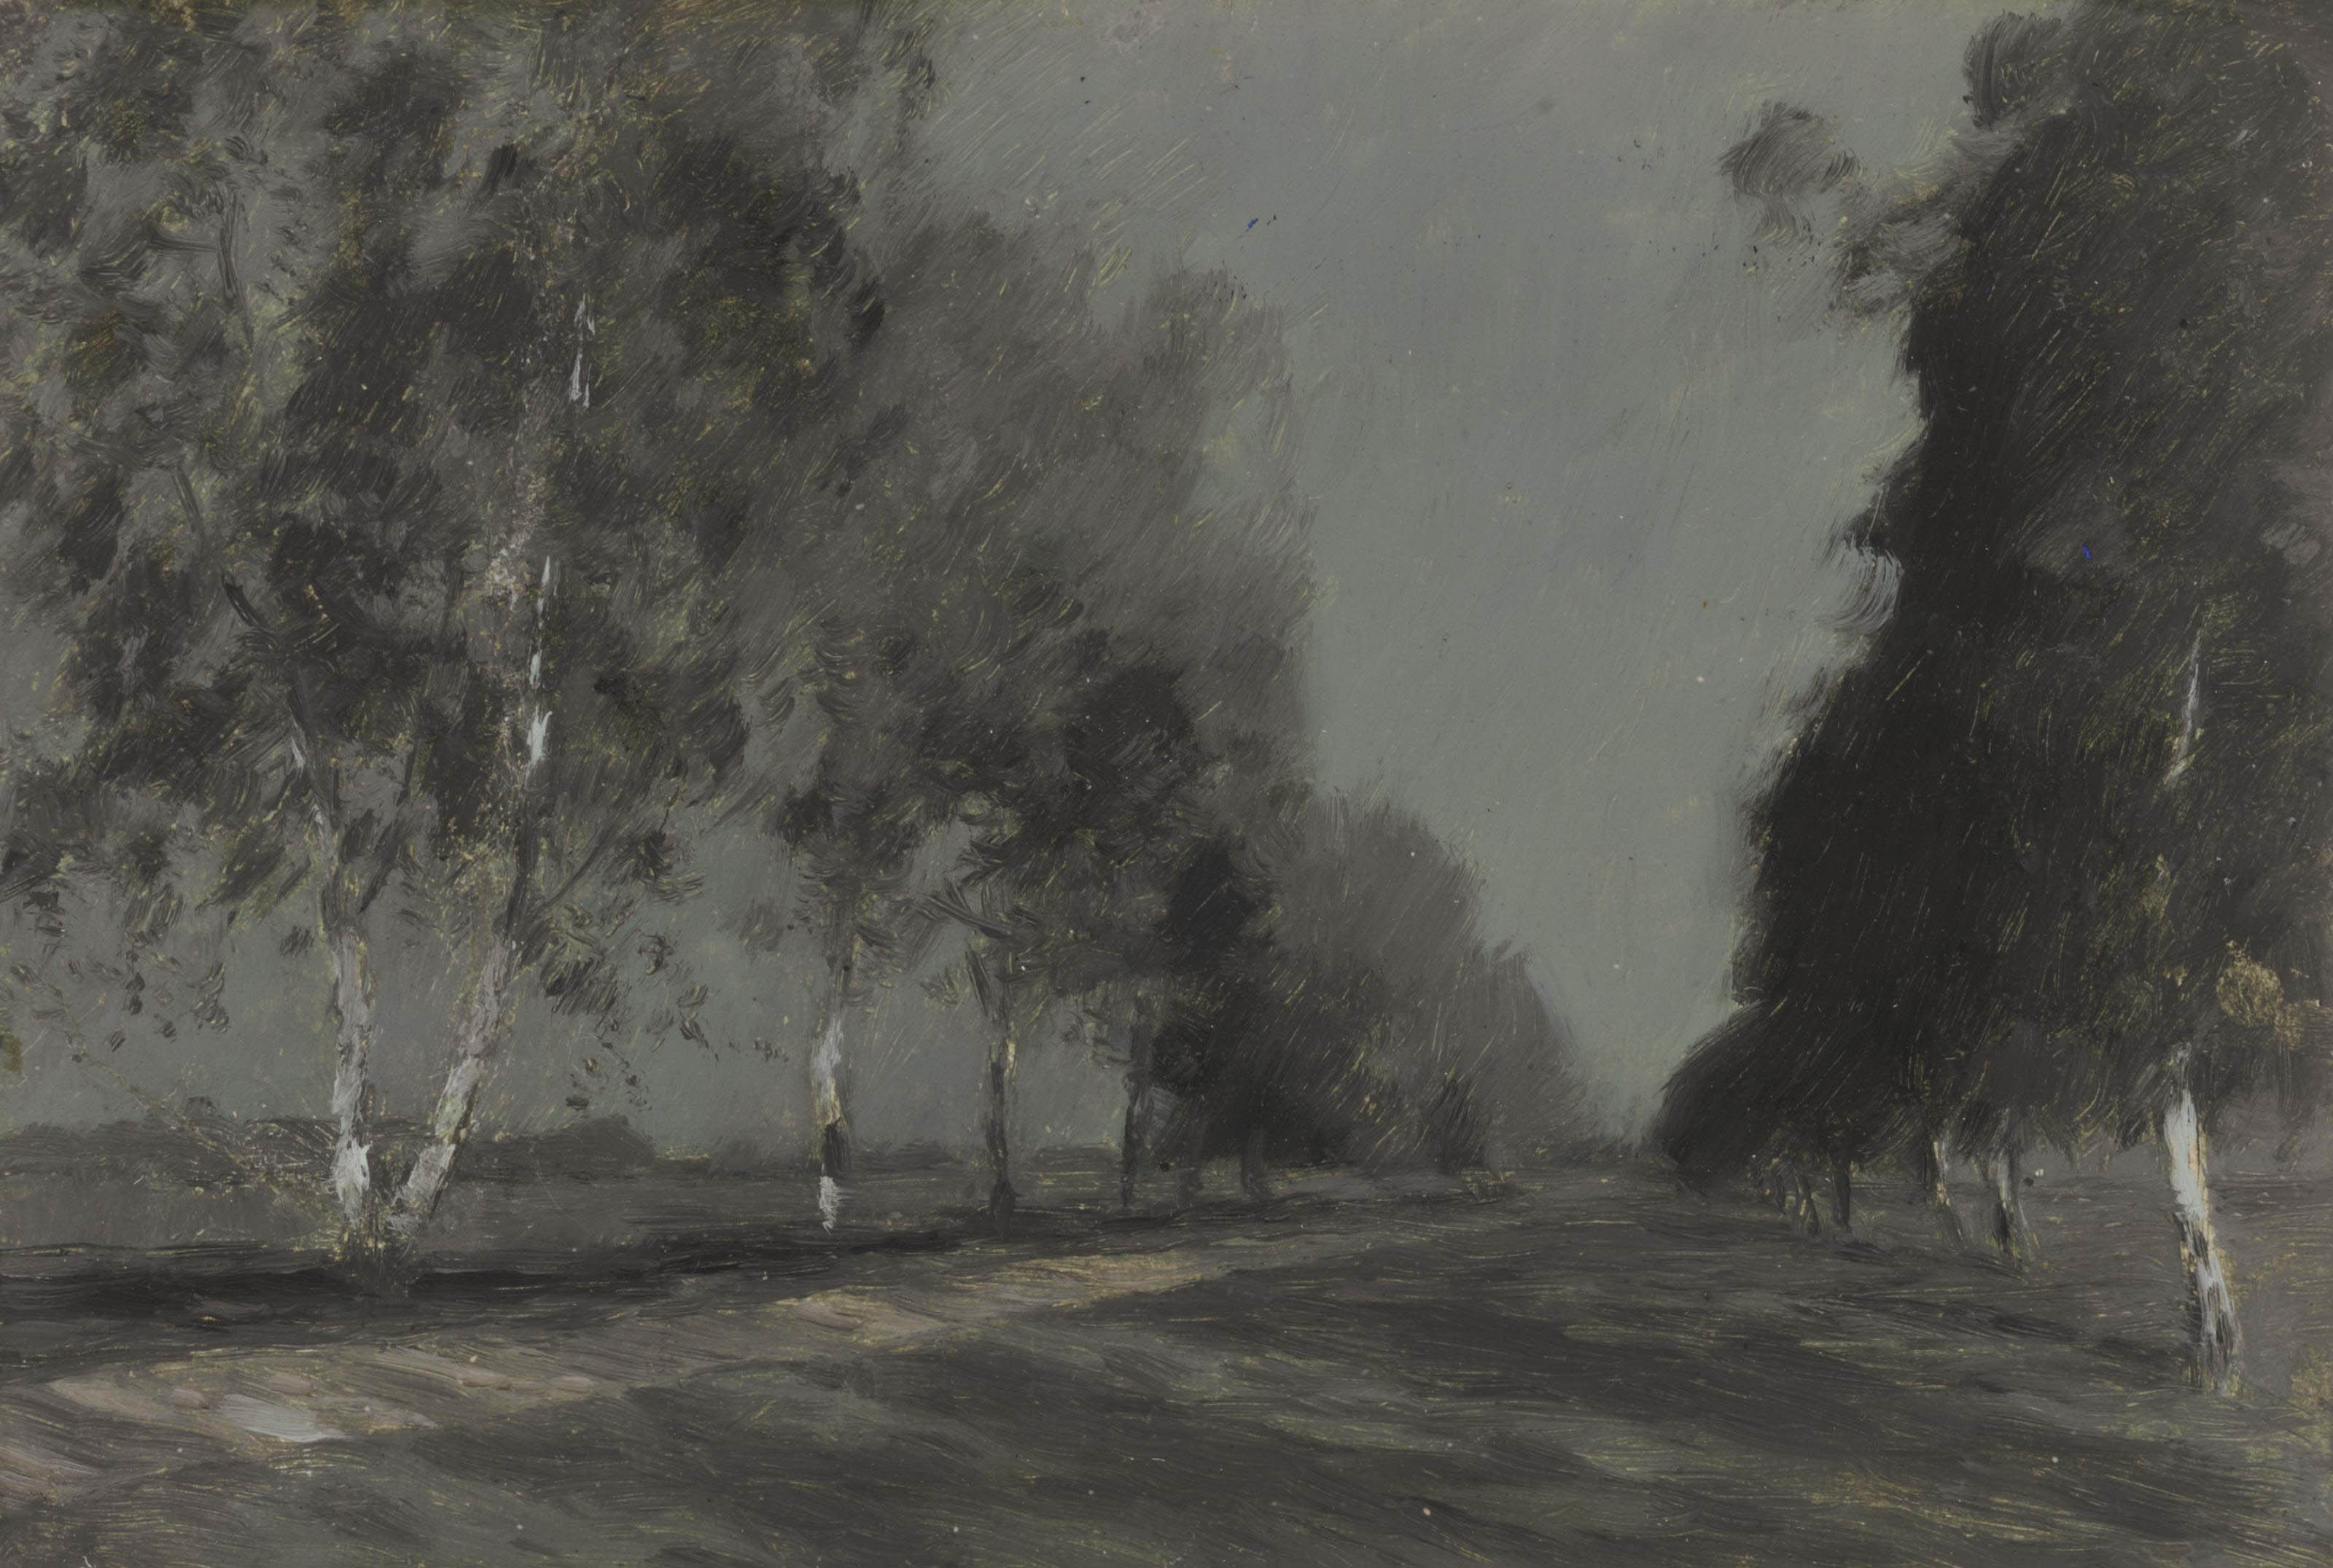 Study for 'Moonlit night'